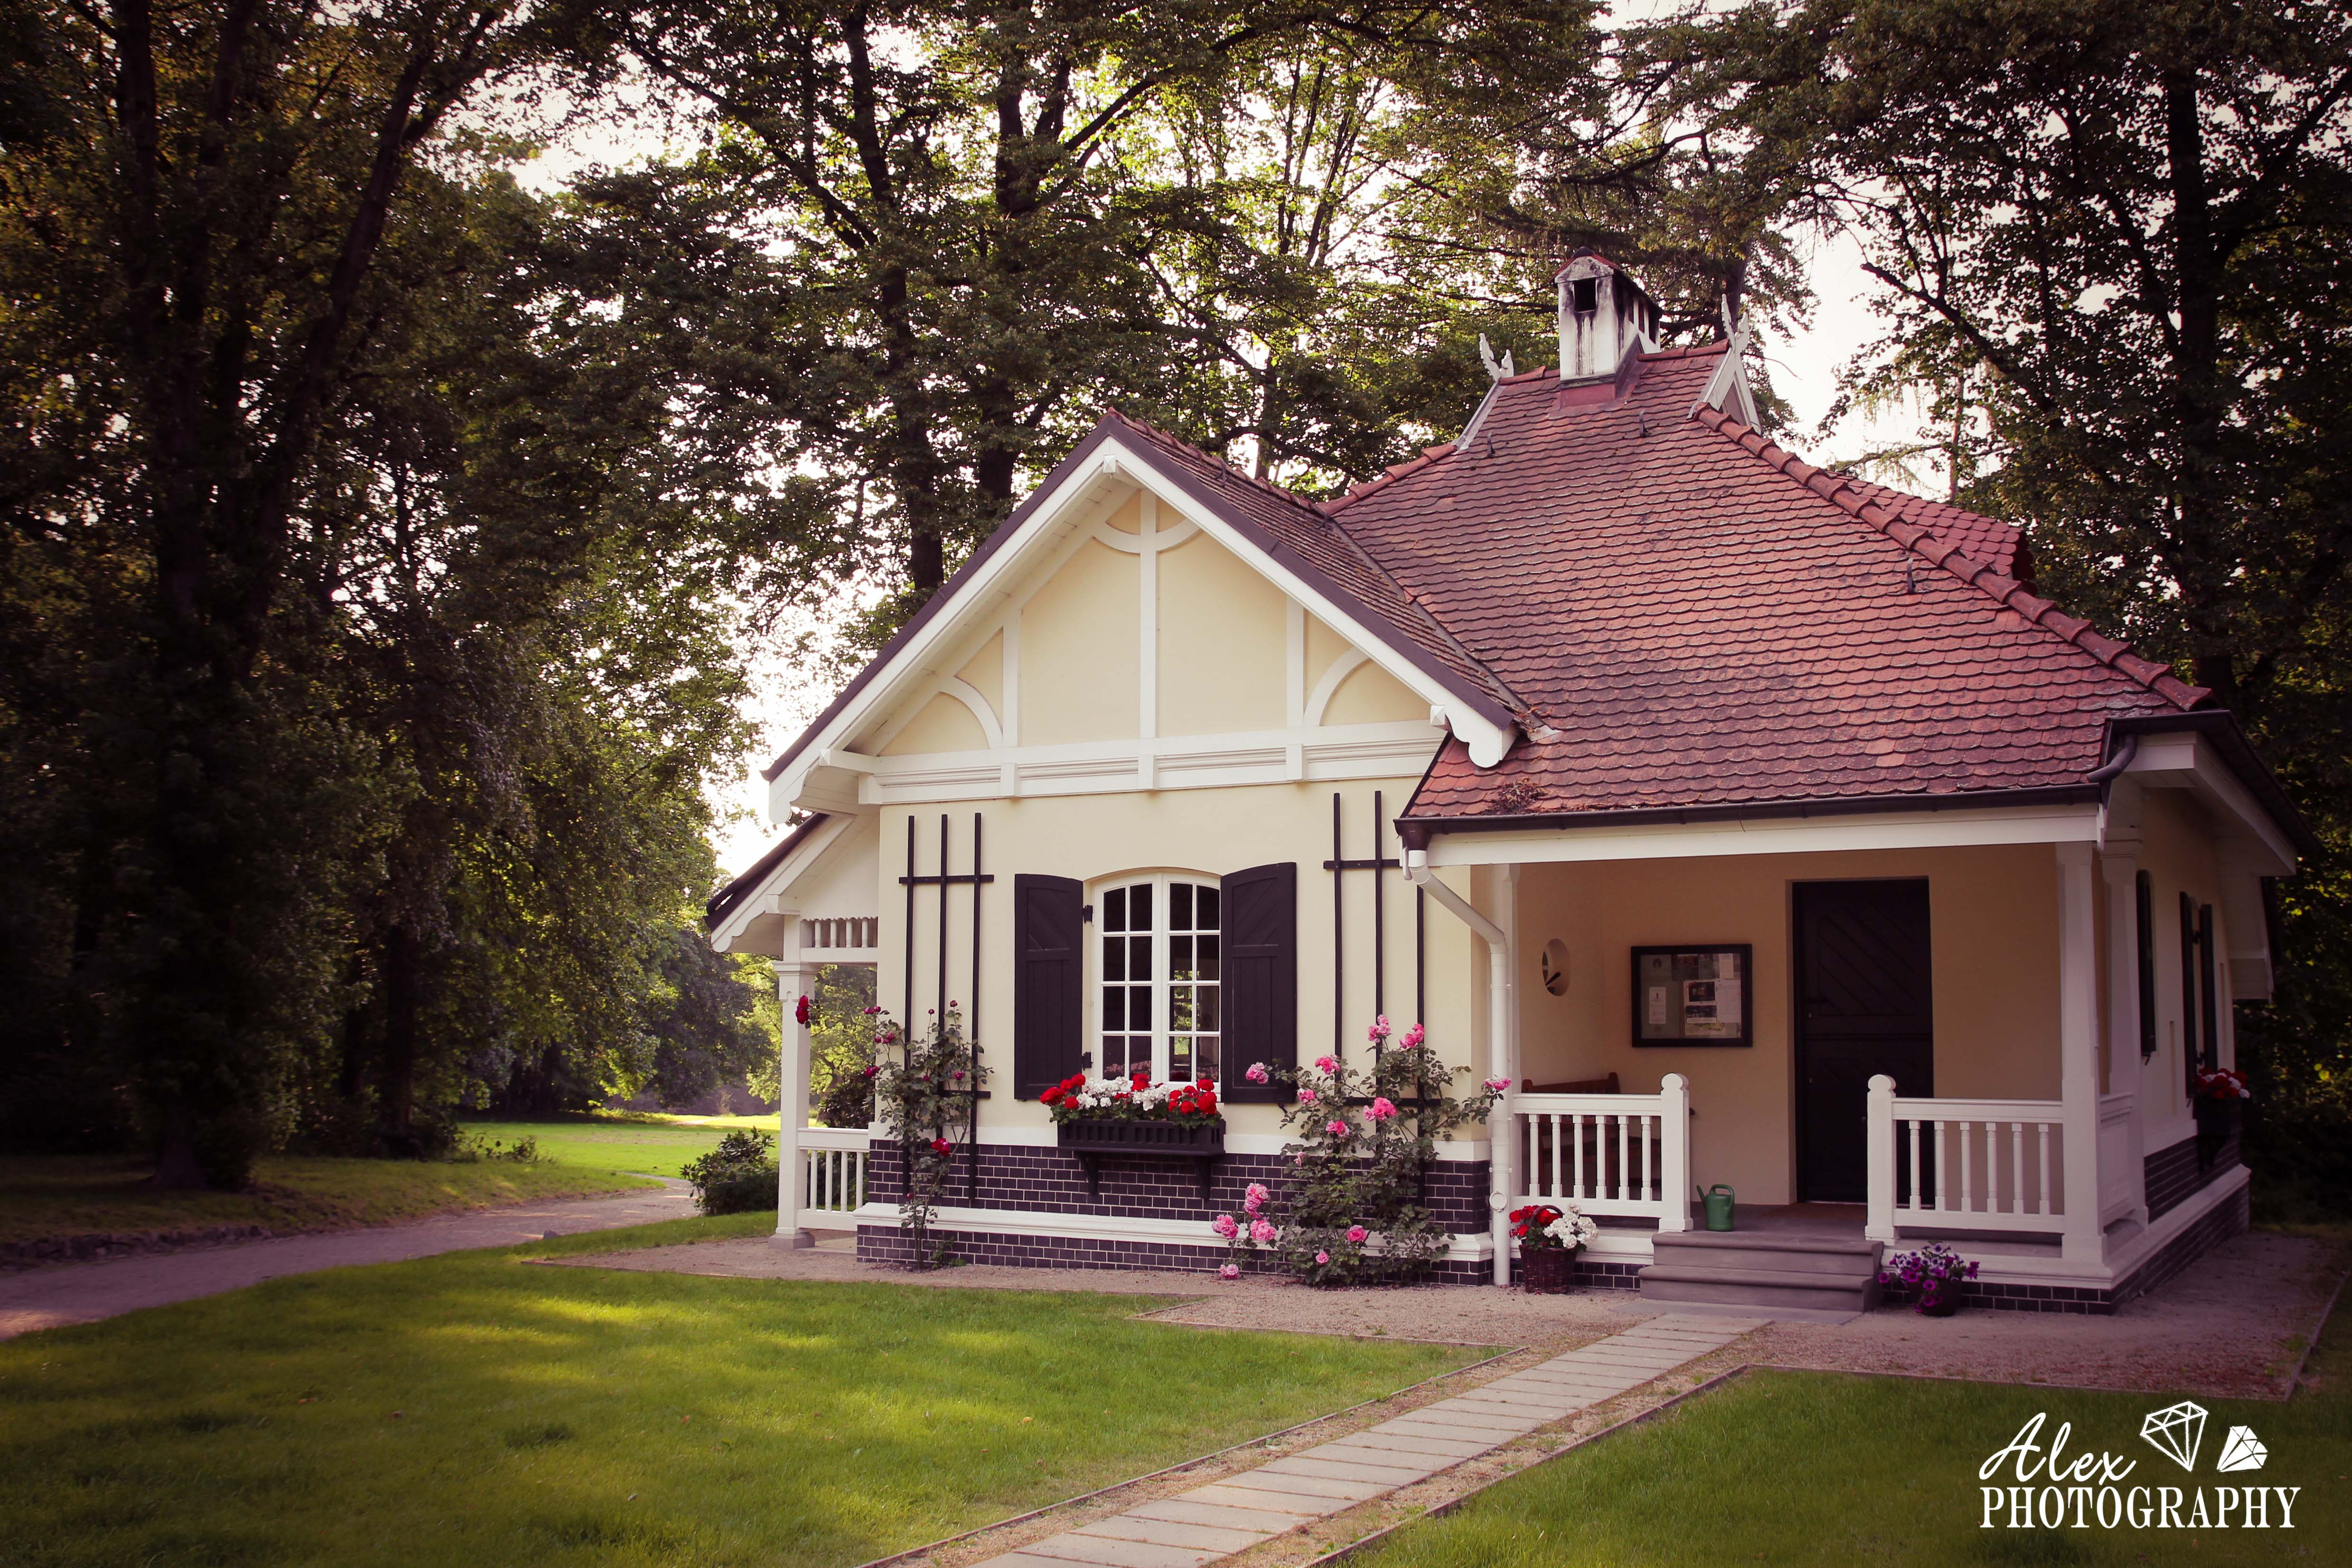 Cute Houses Images Part - 15: Good Cute House Images